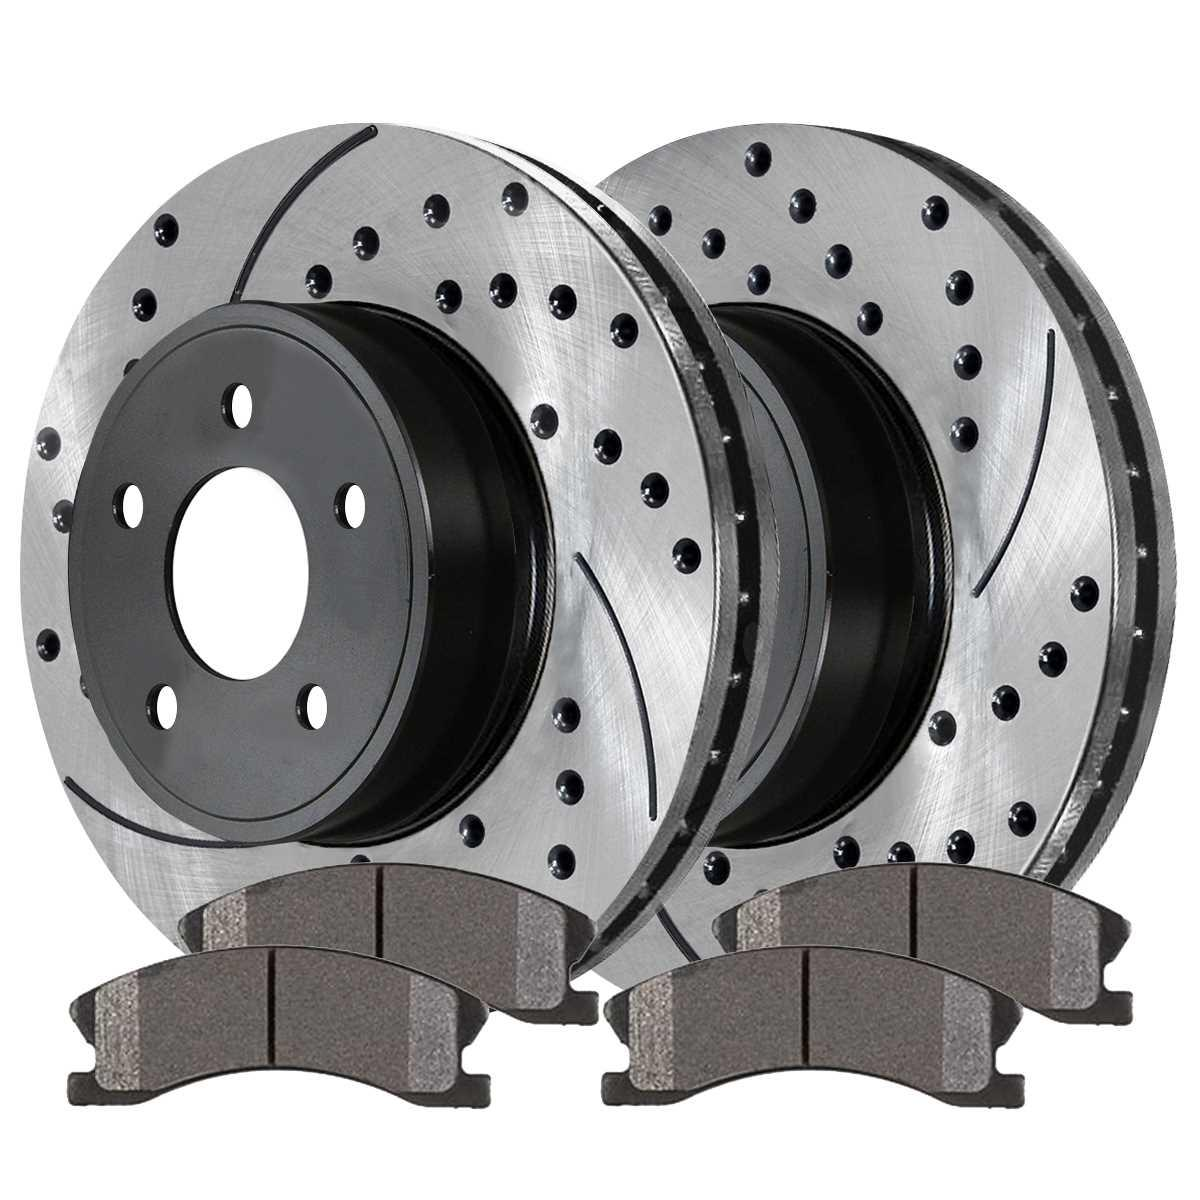 AutoShack PR41313PR41422 Set of 4 Front and Rear Drilled and Slotted Disc Brake Rotors Replacement for 2006 2007 2008 2009 2010 2011 Honda Civic